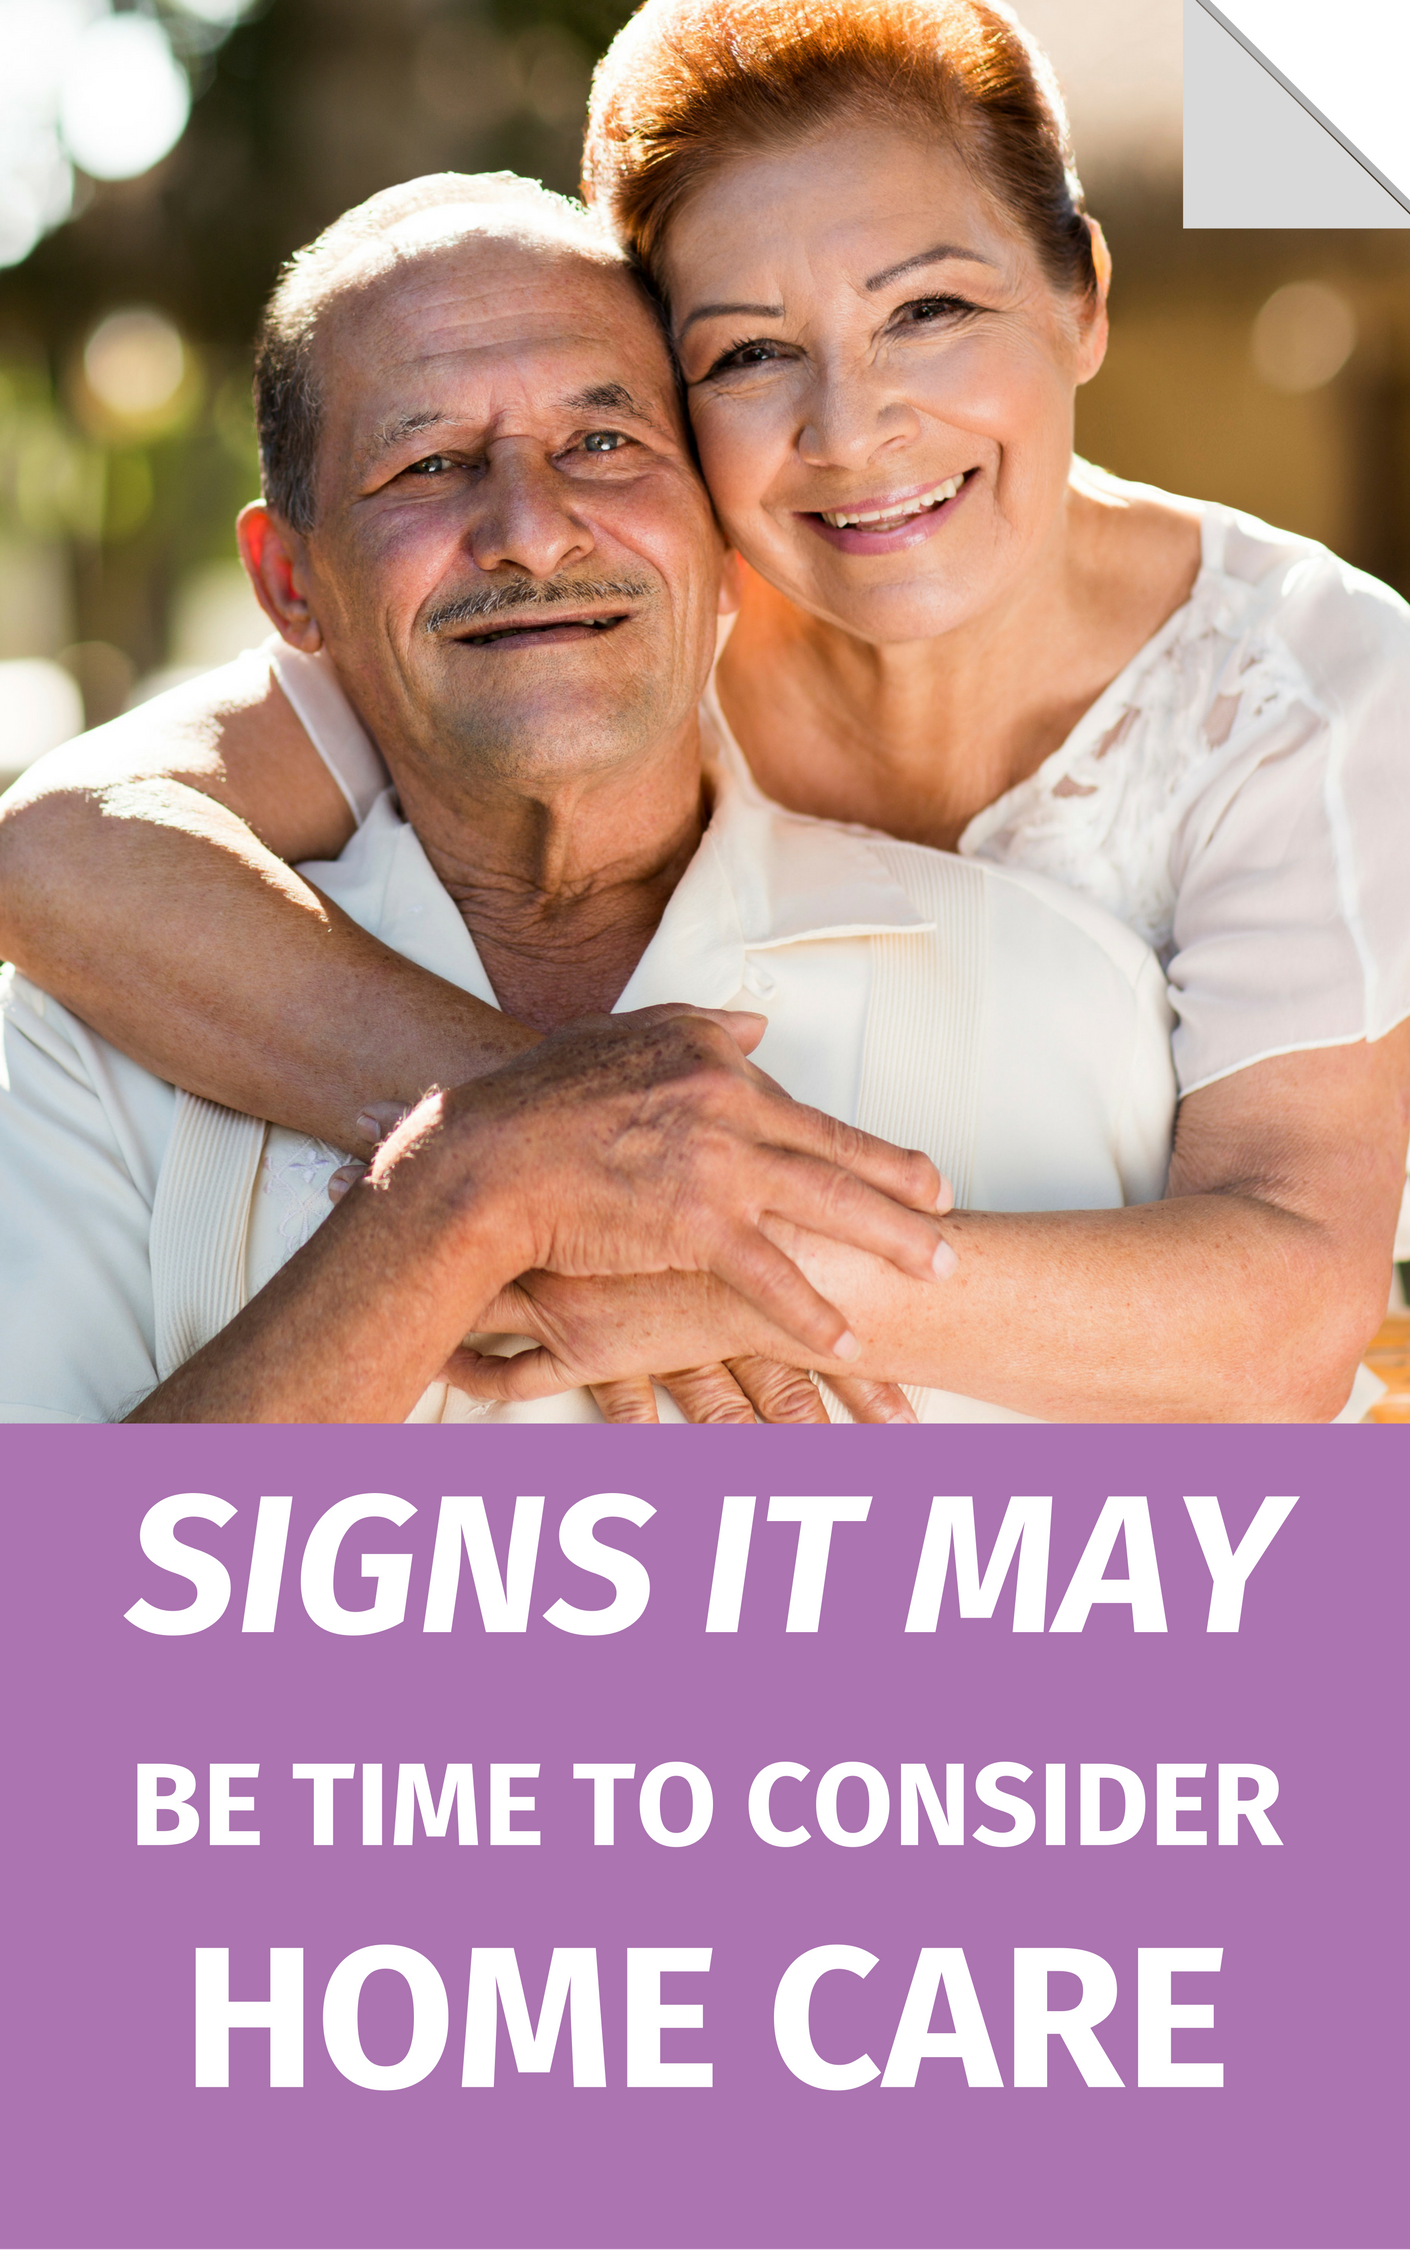 Signs It May Be Time To Consider Home Care